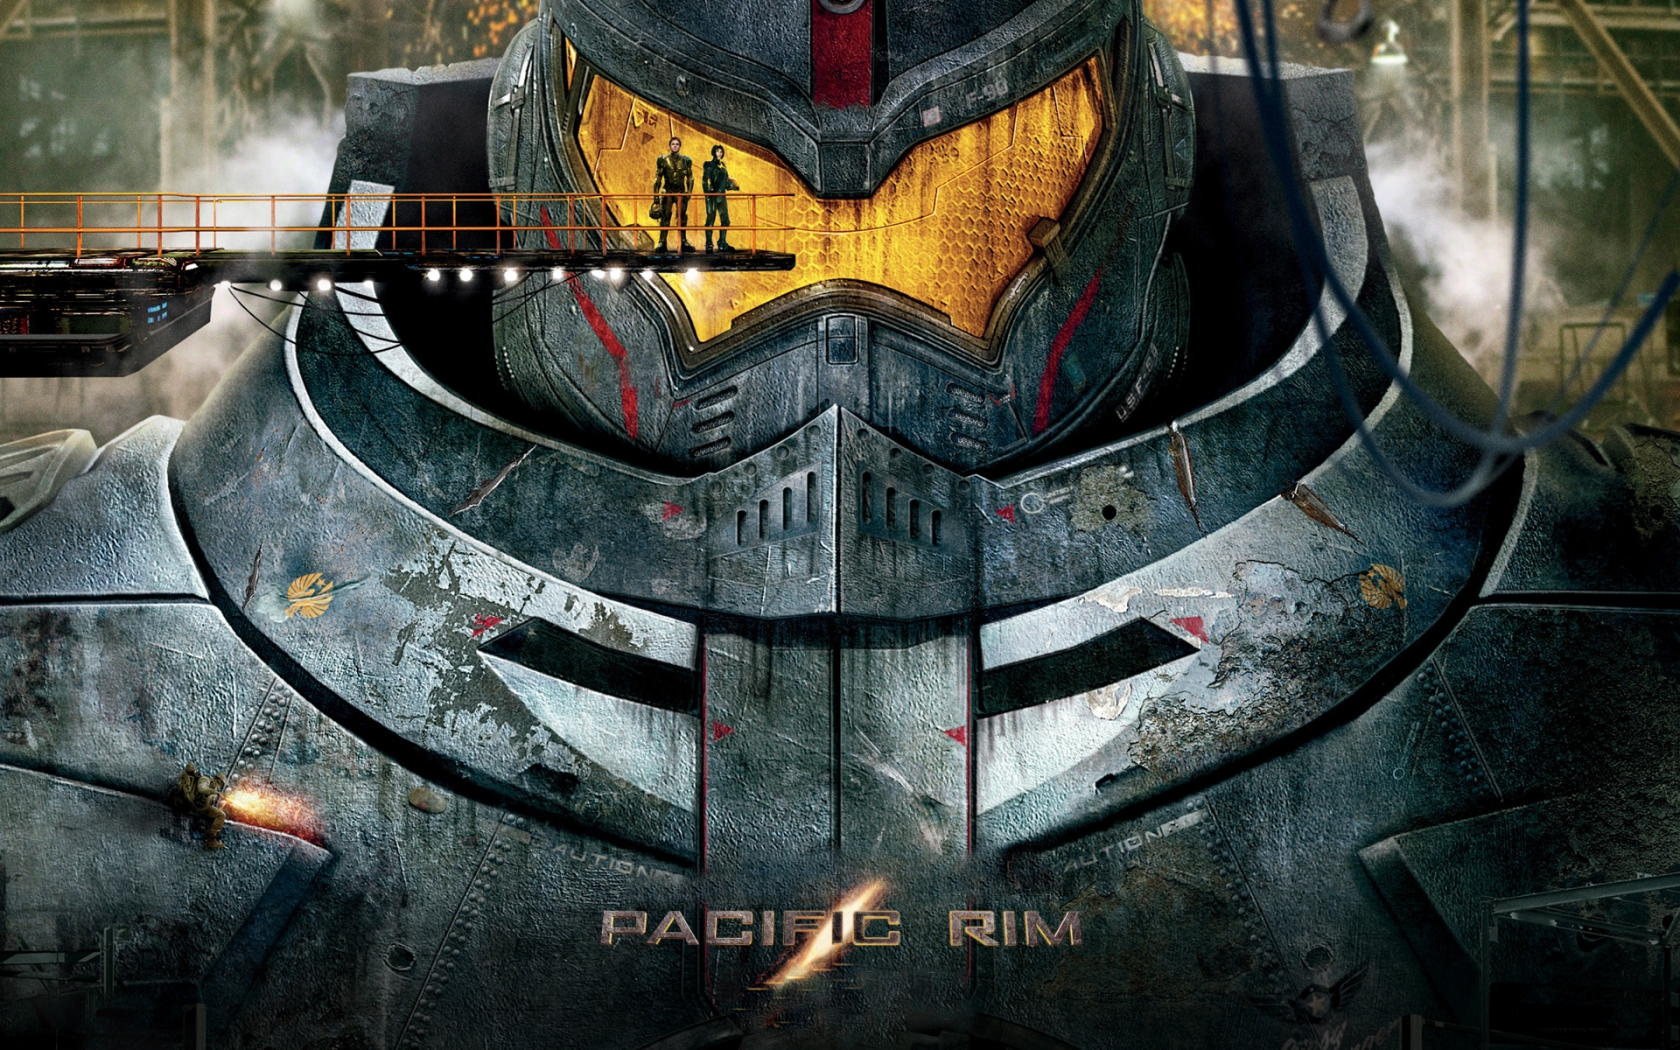 2013 Pacific Rim Film for 1680 x 1050 widescreen resolution